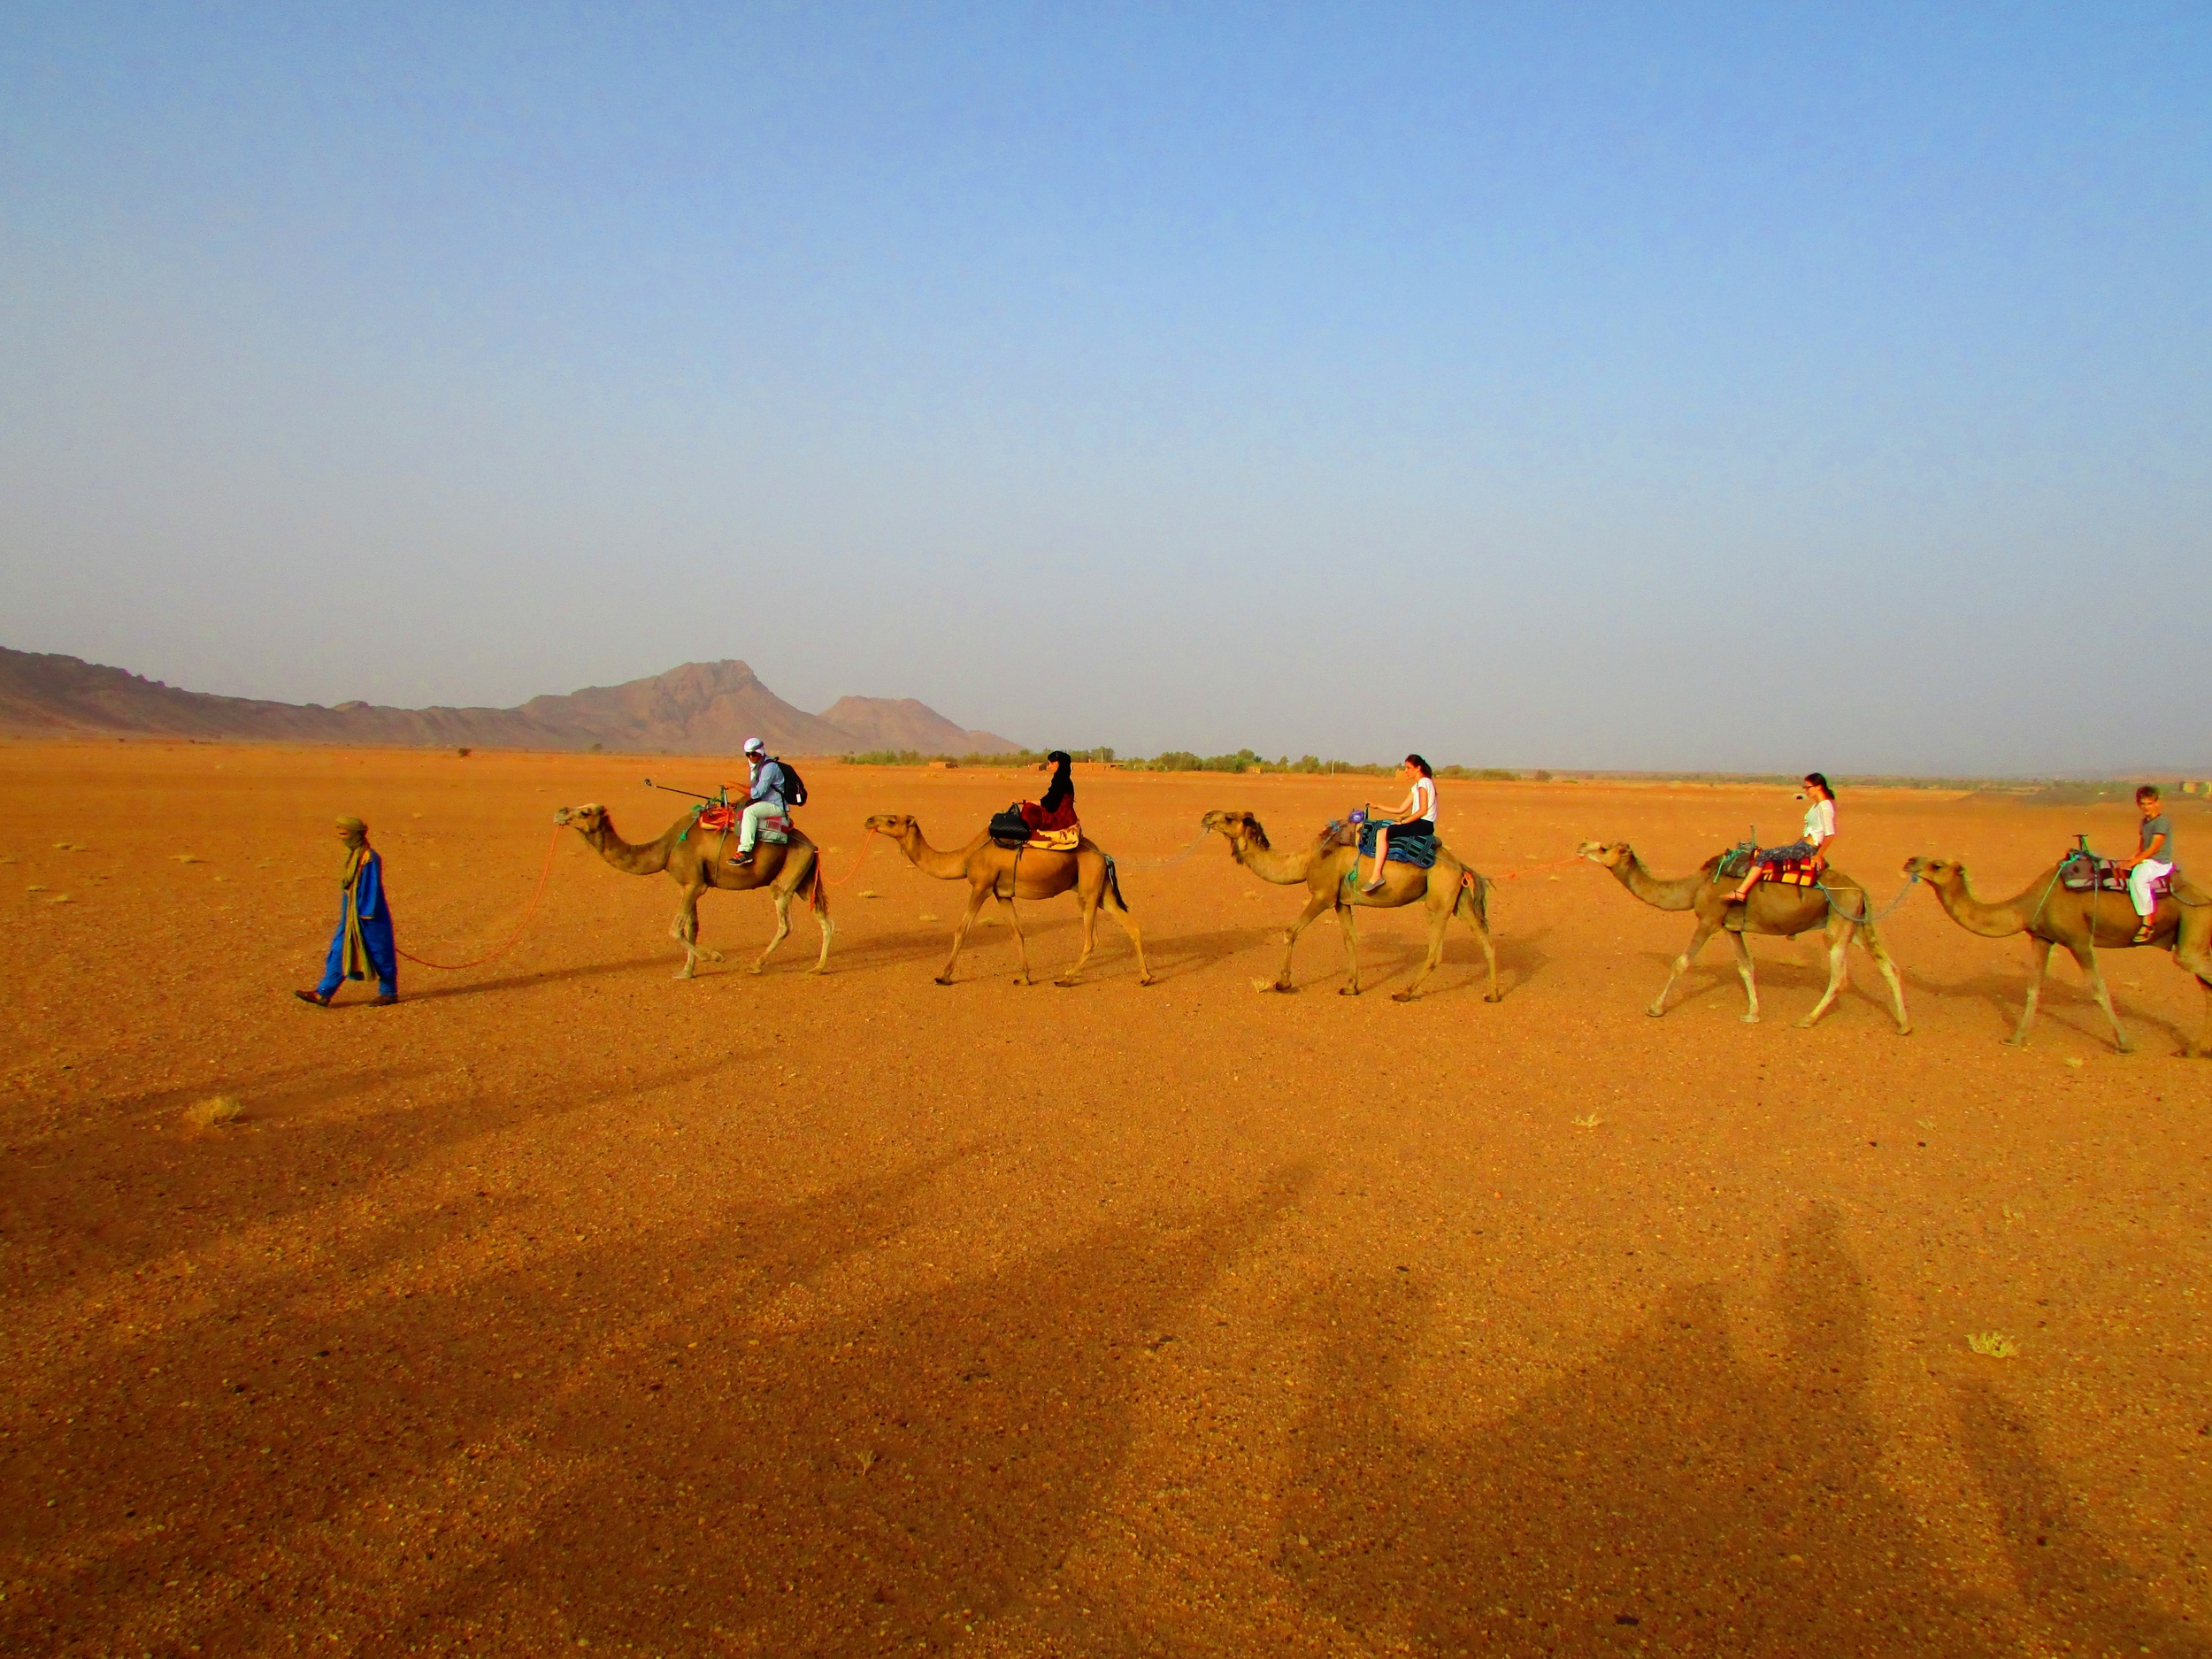 A morning camel ride out of the Sahara in Morocco